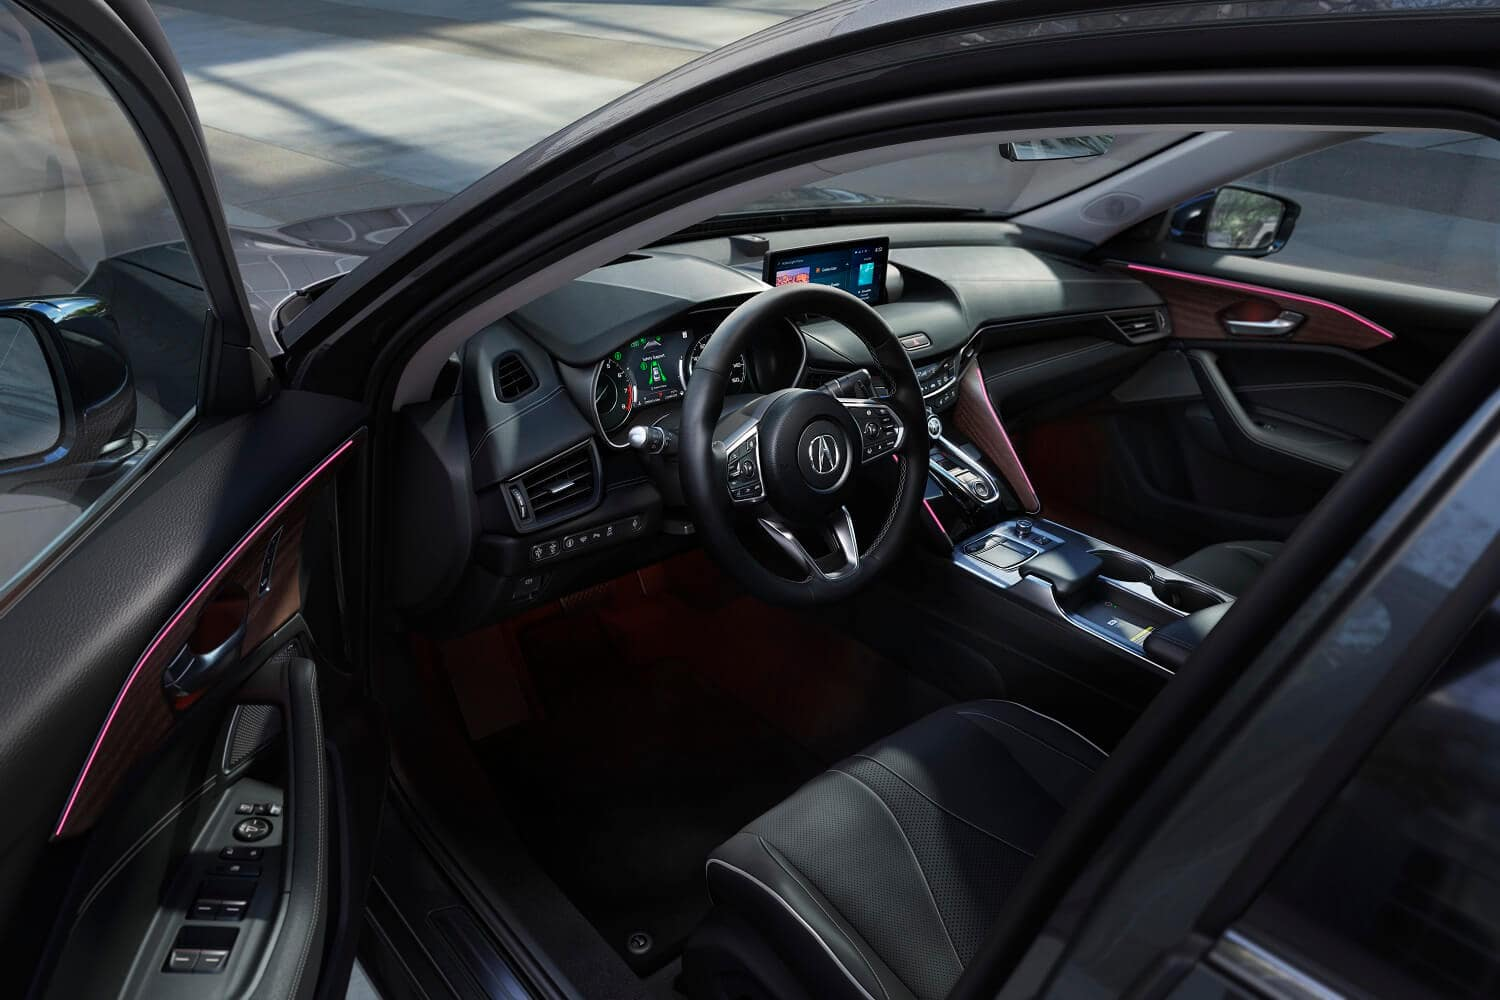 2021 Acura TLX Interior View from Drivers Side